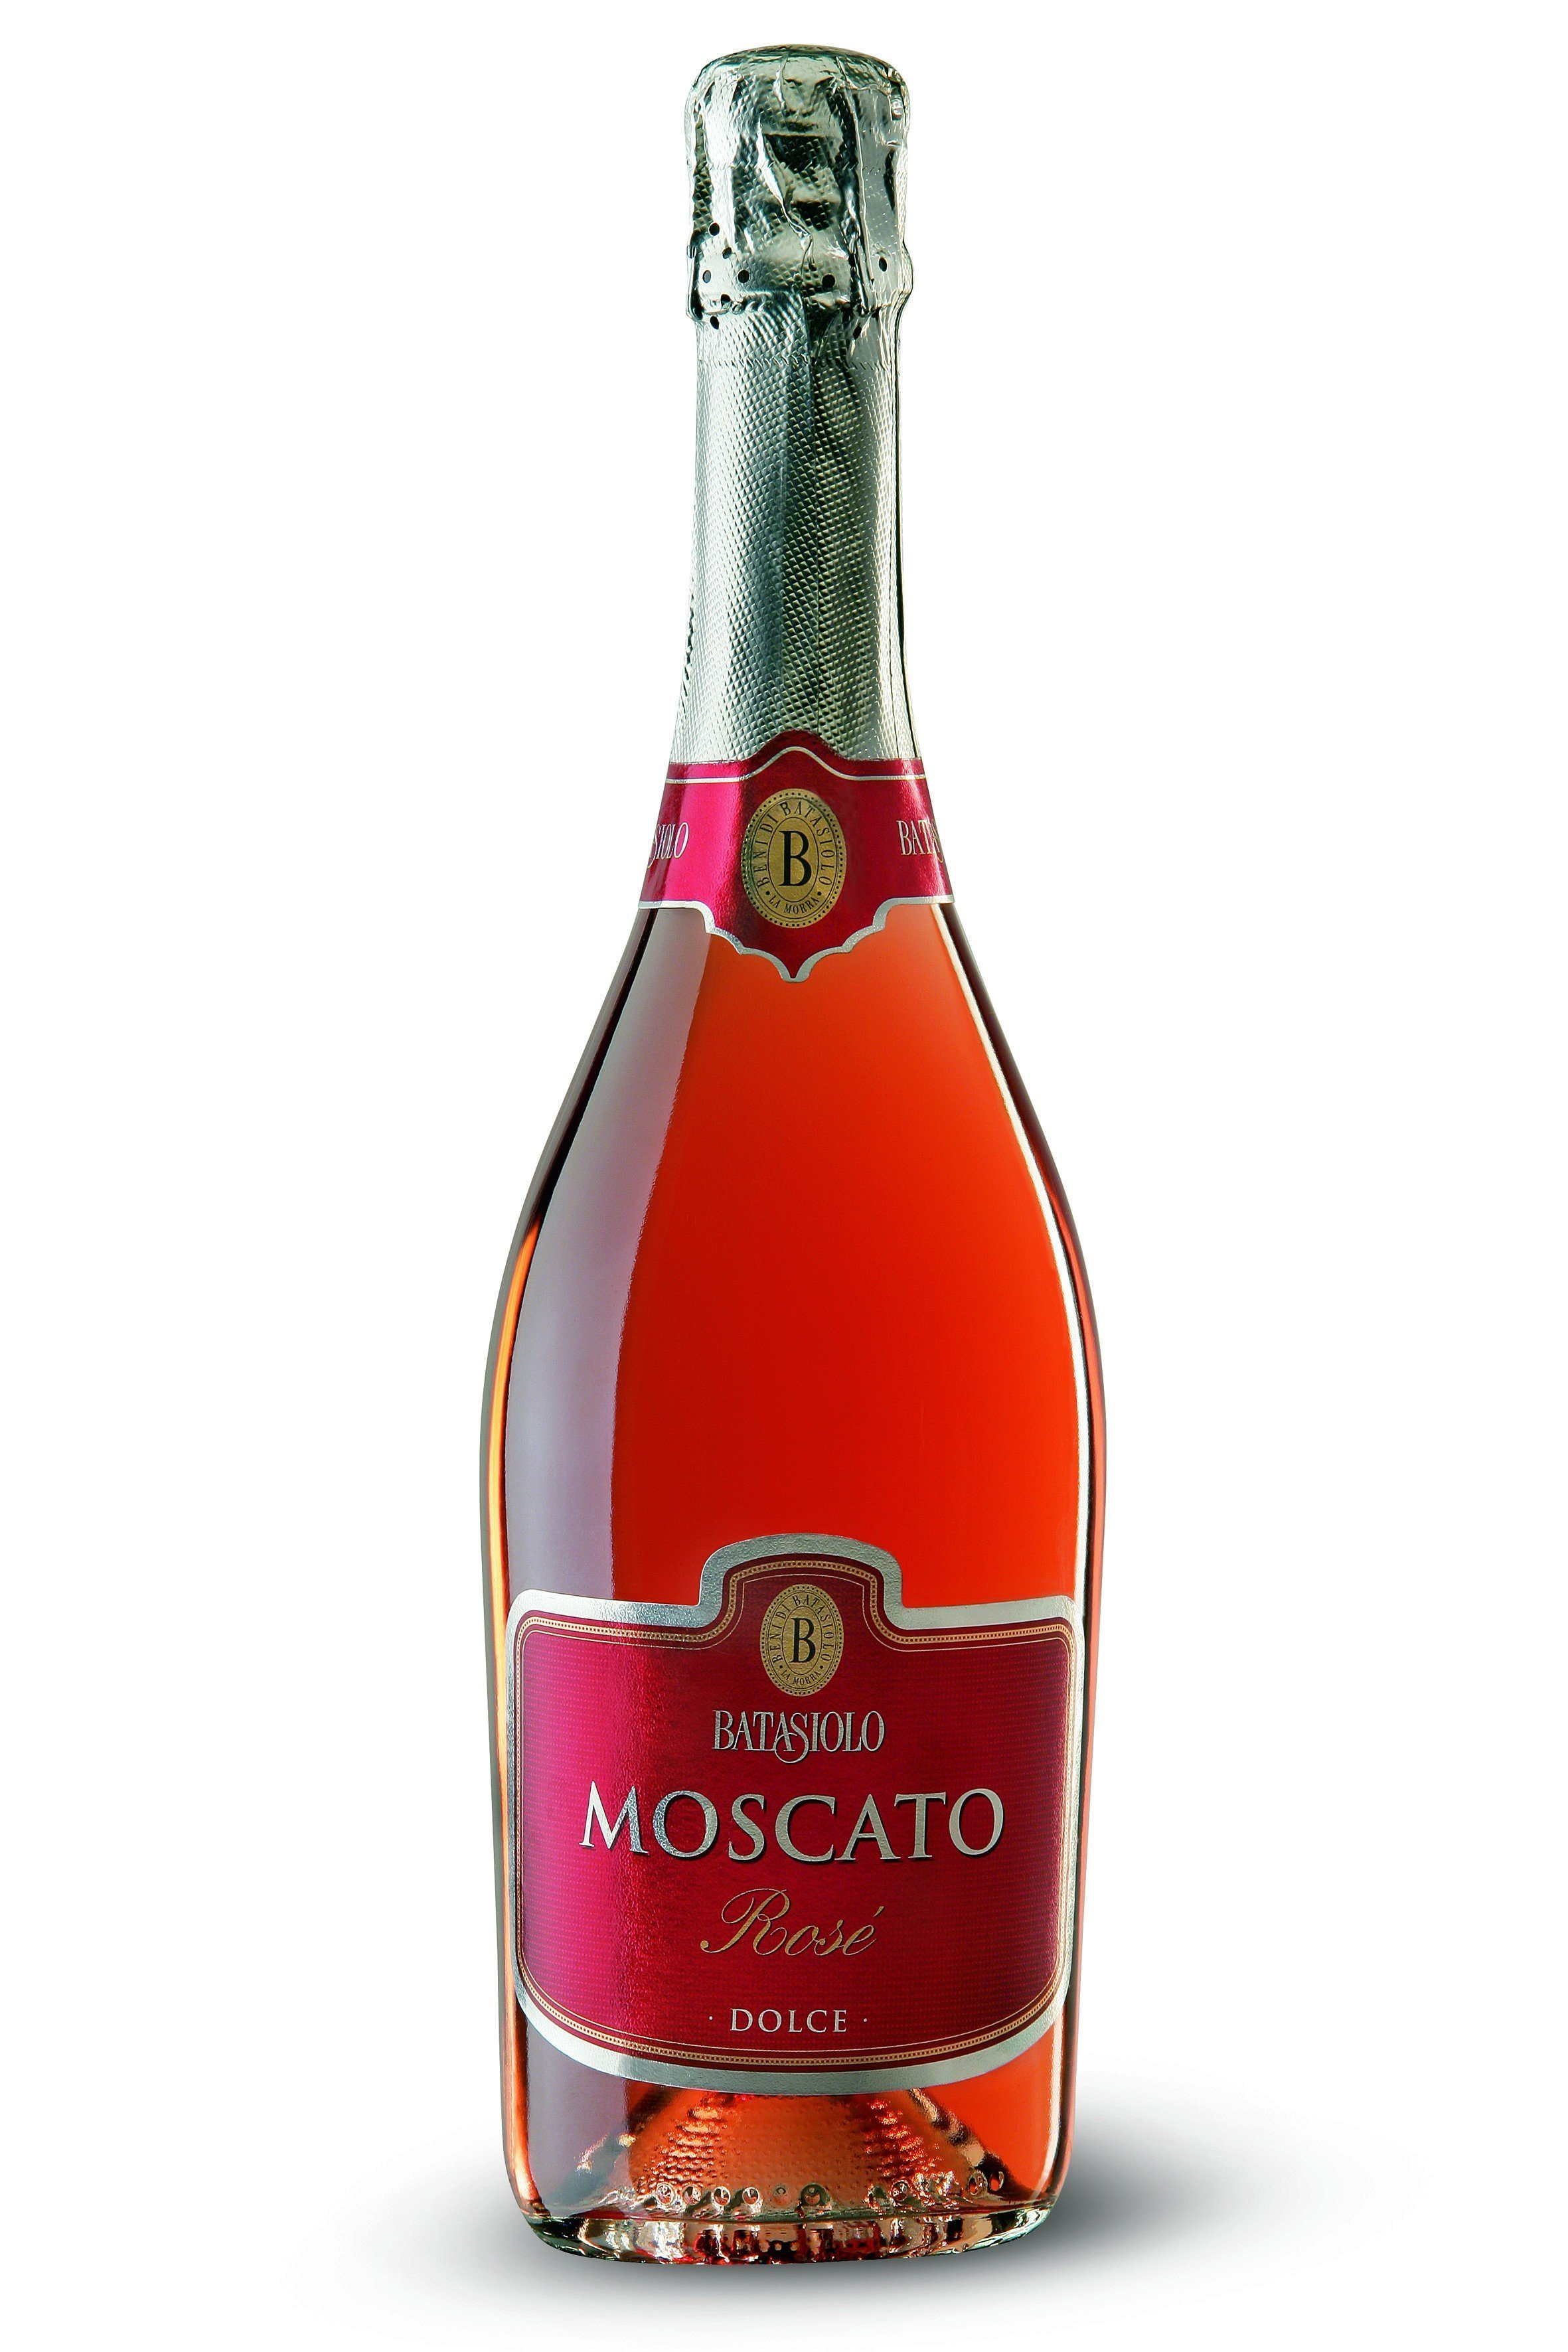 Review wines of batasiolo drinkhacker for Drinks with pink moscato